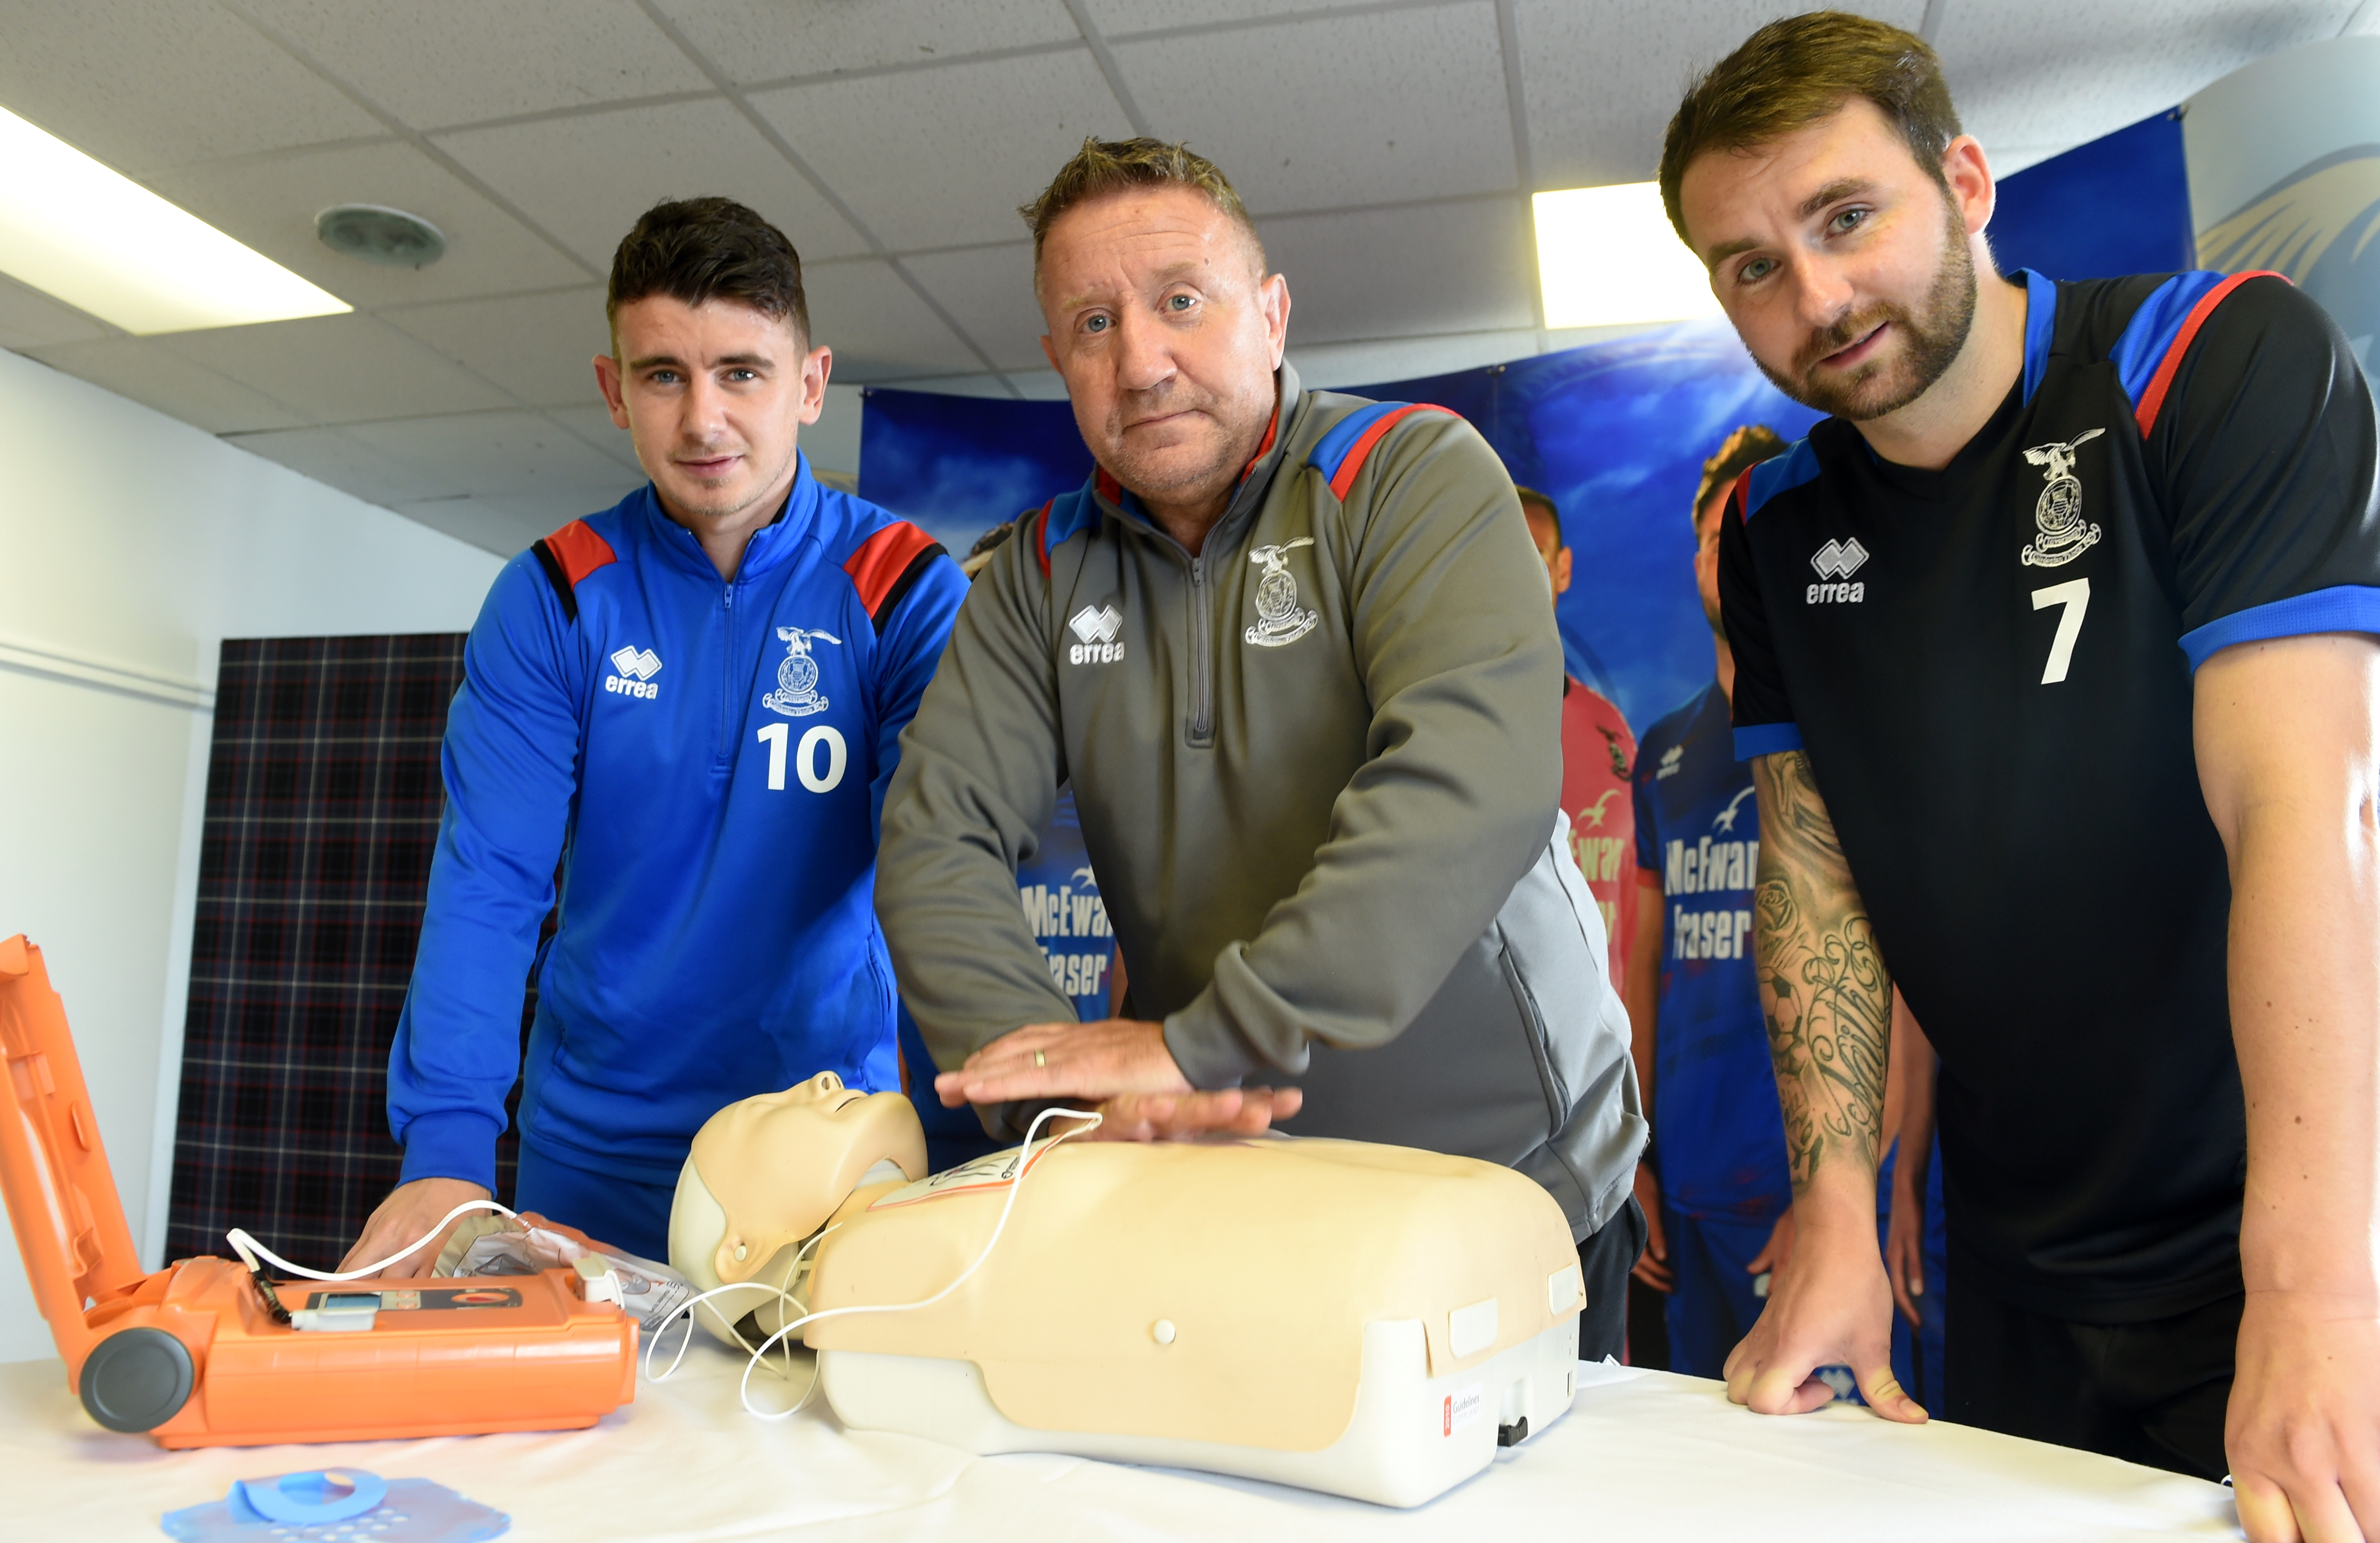 All staff and players of Inverness Caledonian Thistle are undergoing training in the use of defibrillators. Manager John Robertson explains the procedure to players Aaron Dorran and James Keetings. Picture by Sandy McCook